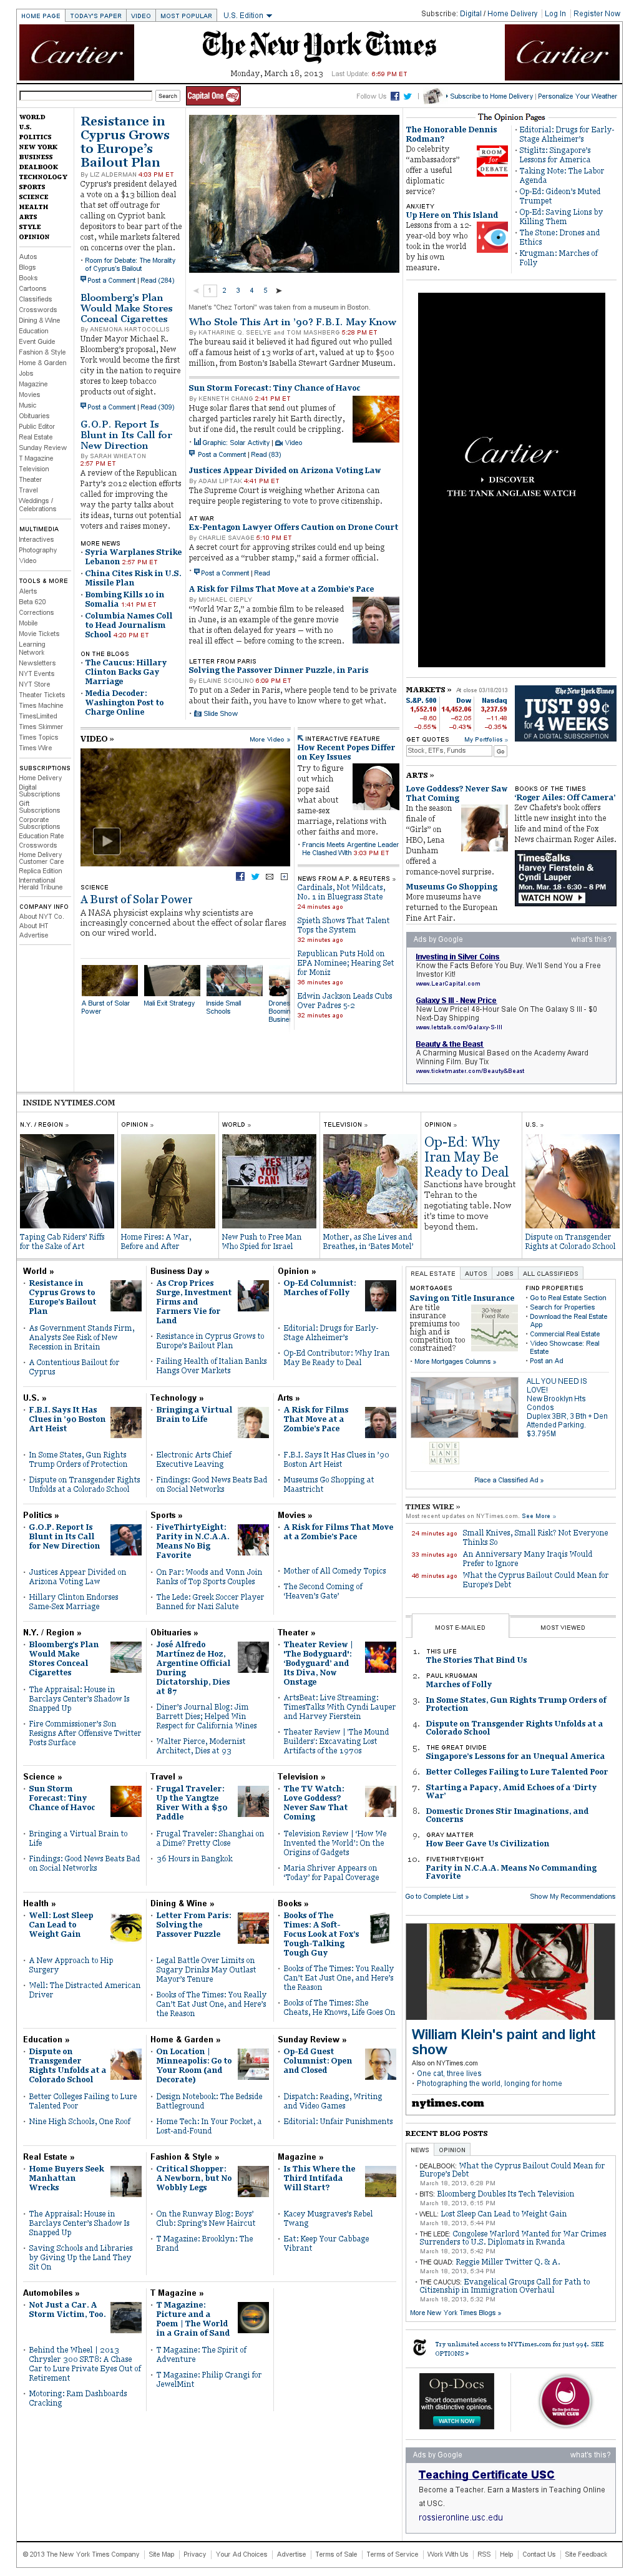 The New York Times at Monday March 18, 2013, 11:20 p.m. UTC